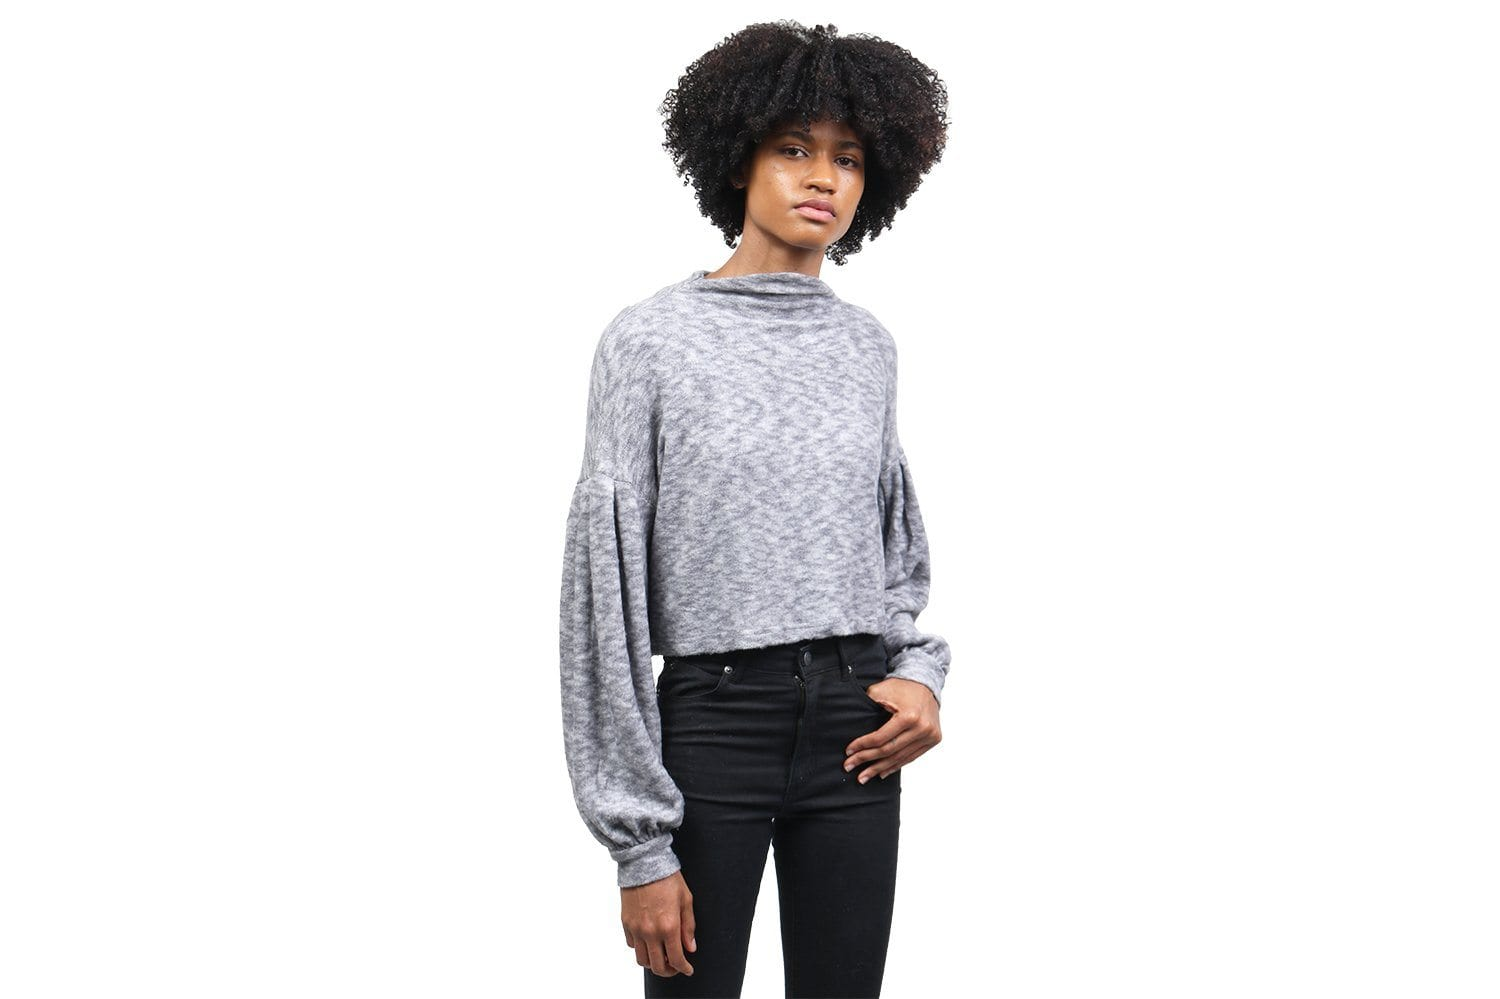 BRUSHED BALLOON SLEEVE TOP WOMENS SOFTGOODS MINK PINK GREY MARLE XS